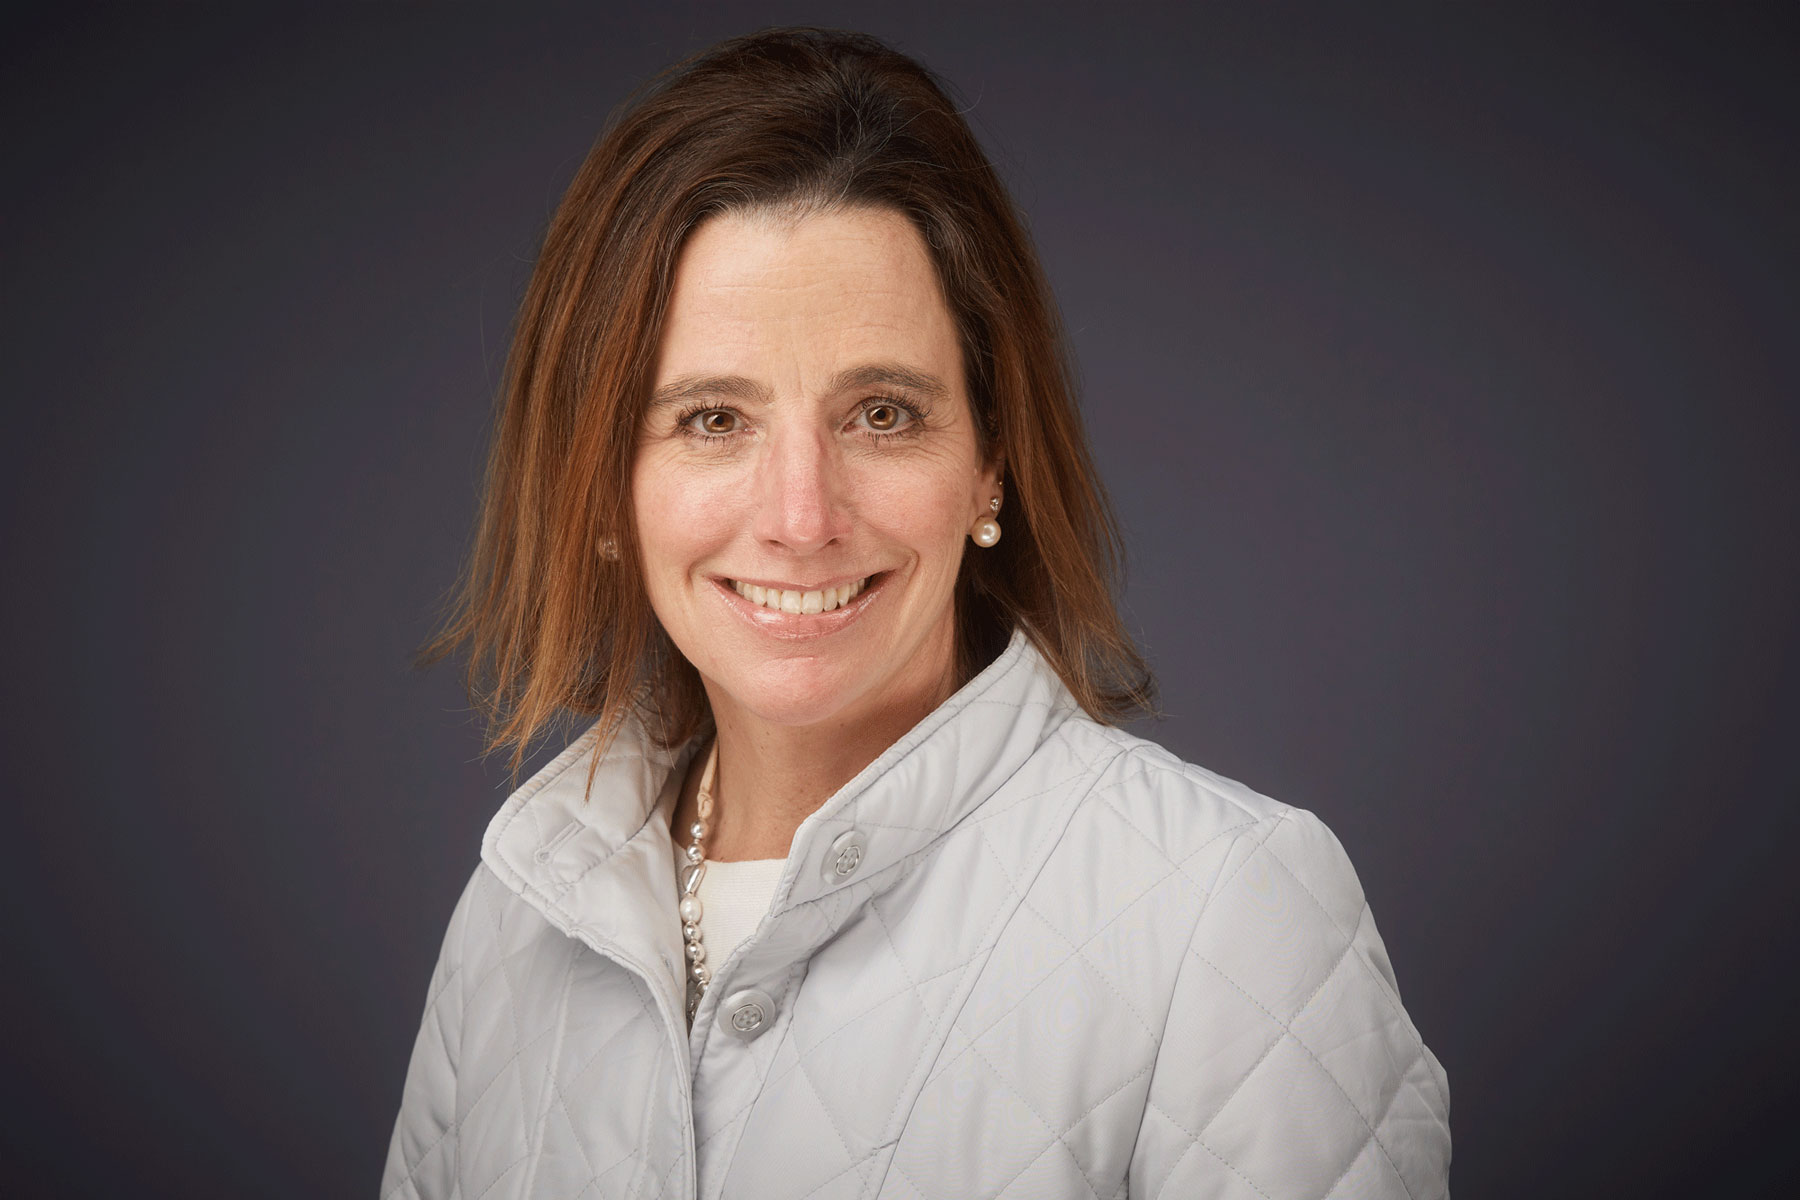 Dr. Valerie Anderson